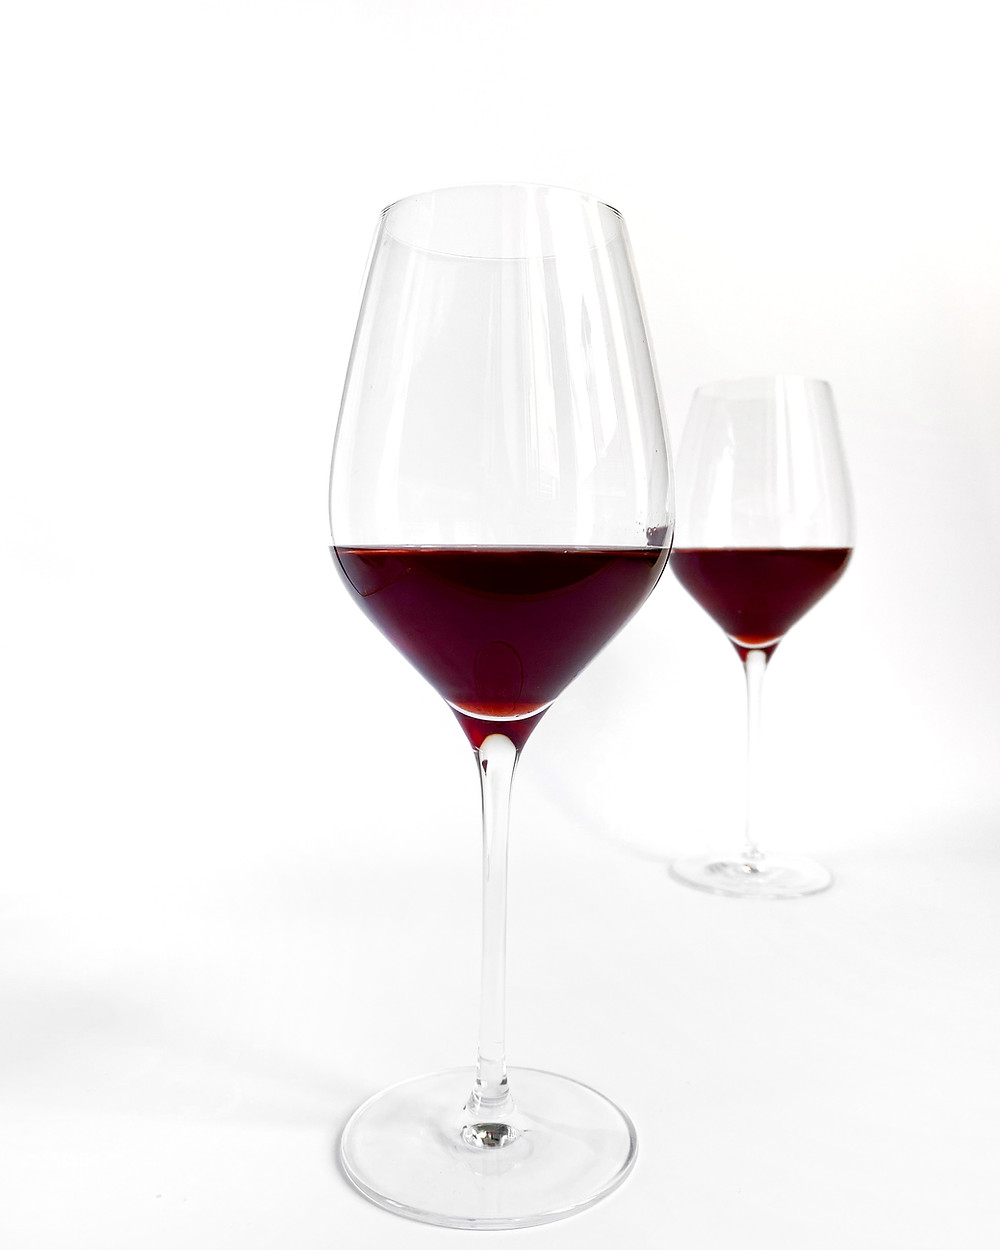 Wine may be a food trigger in those with chronic hives